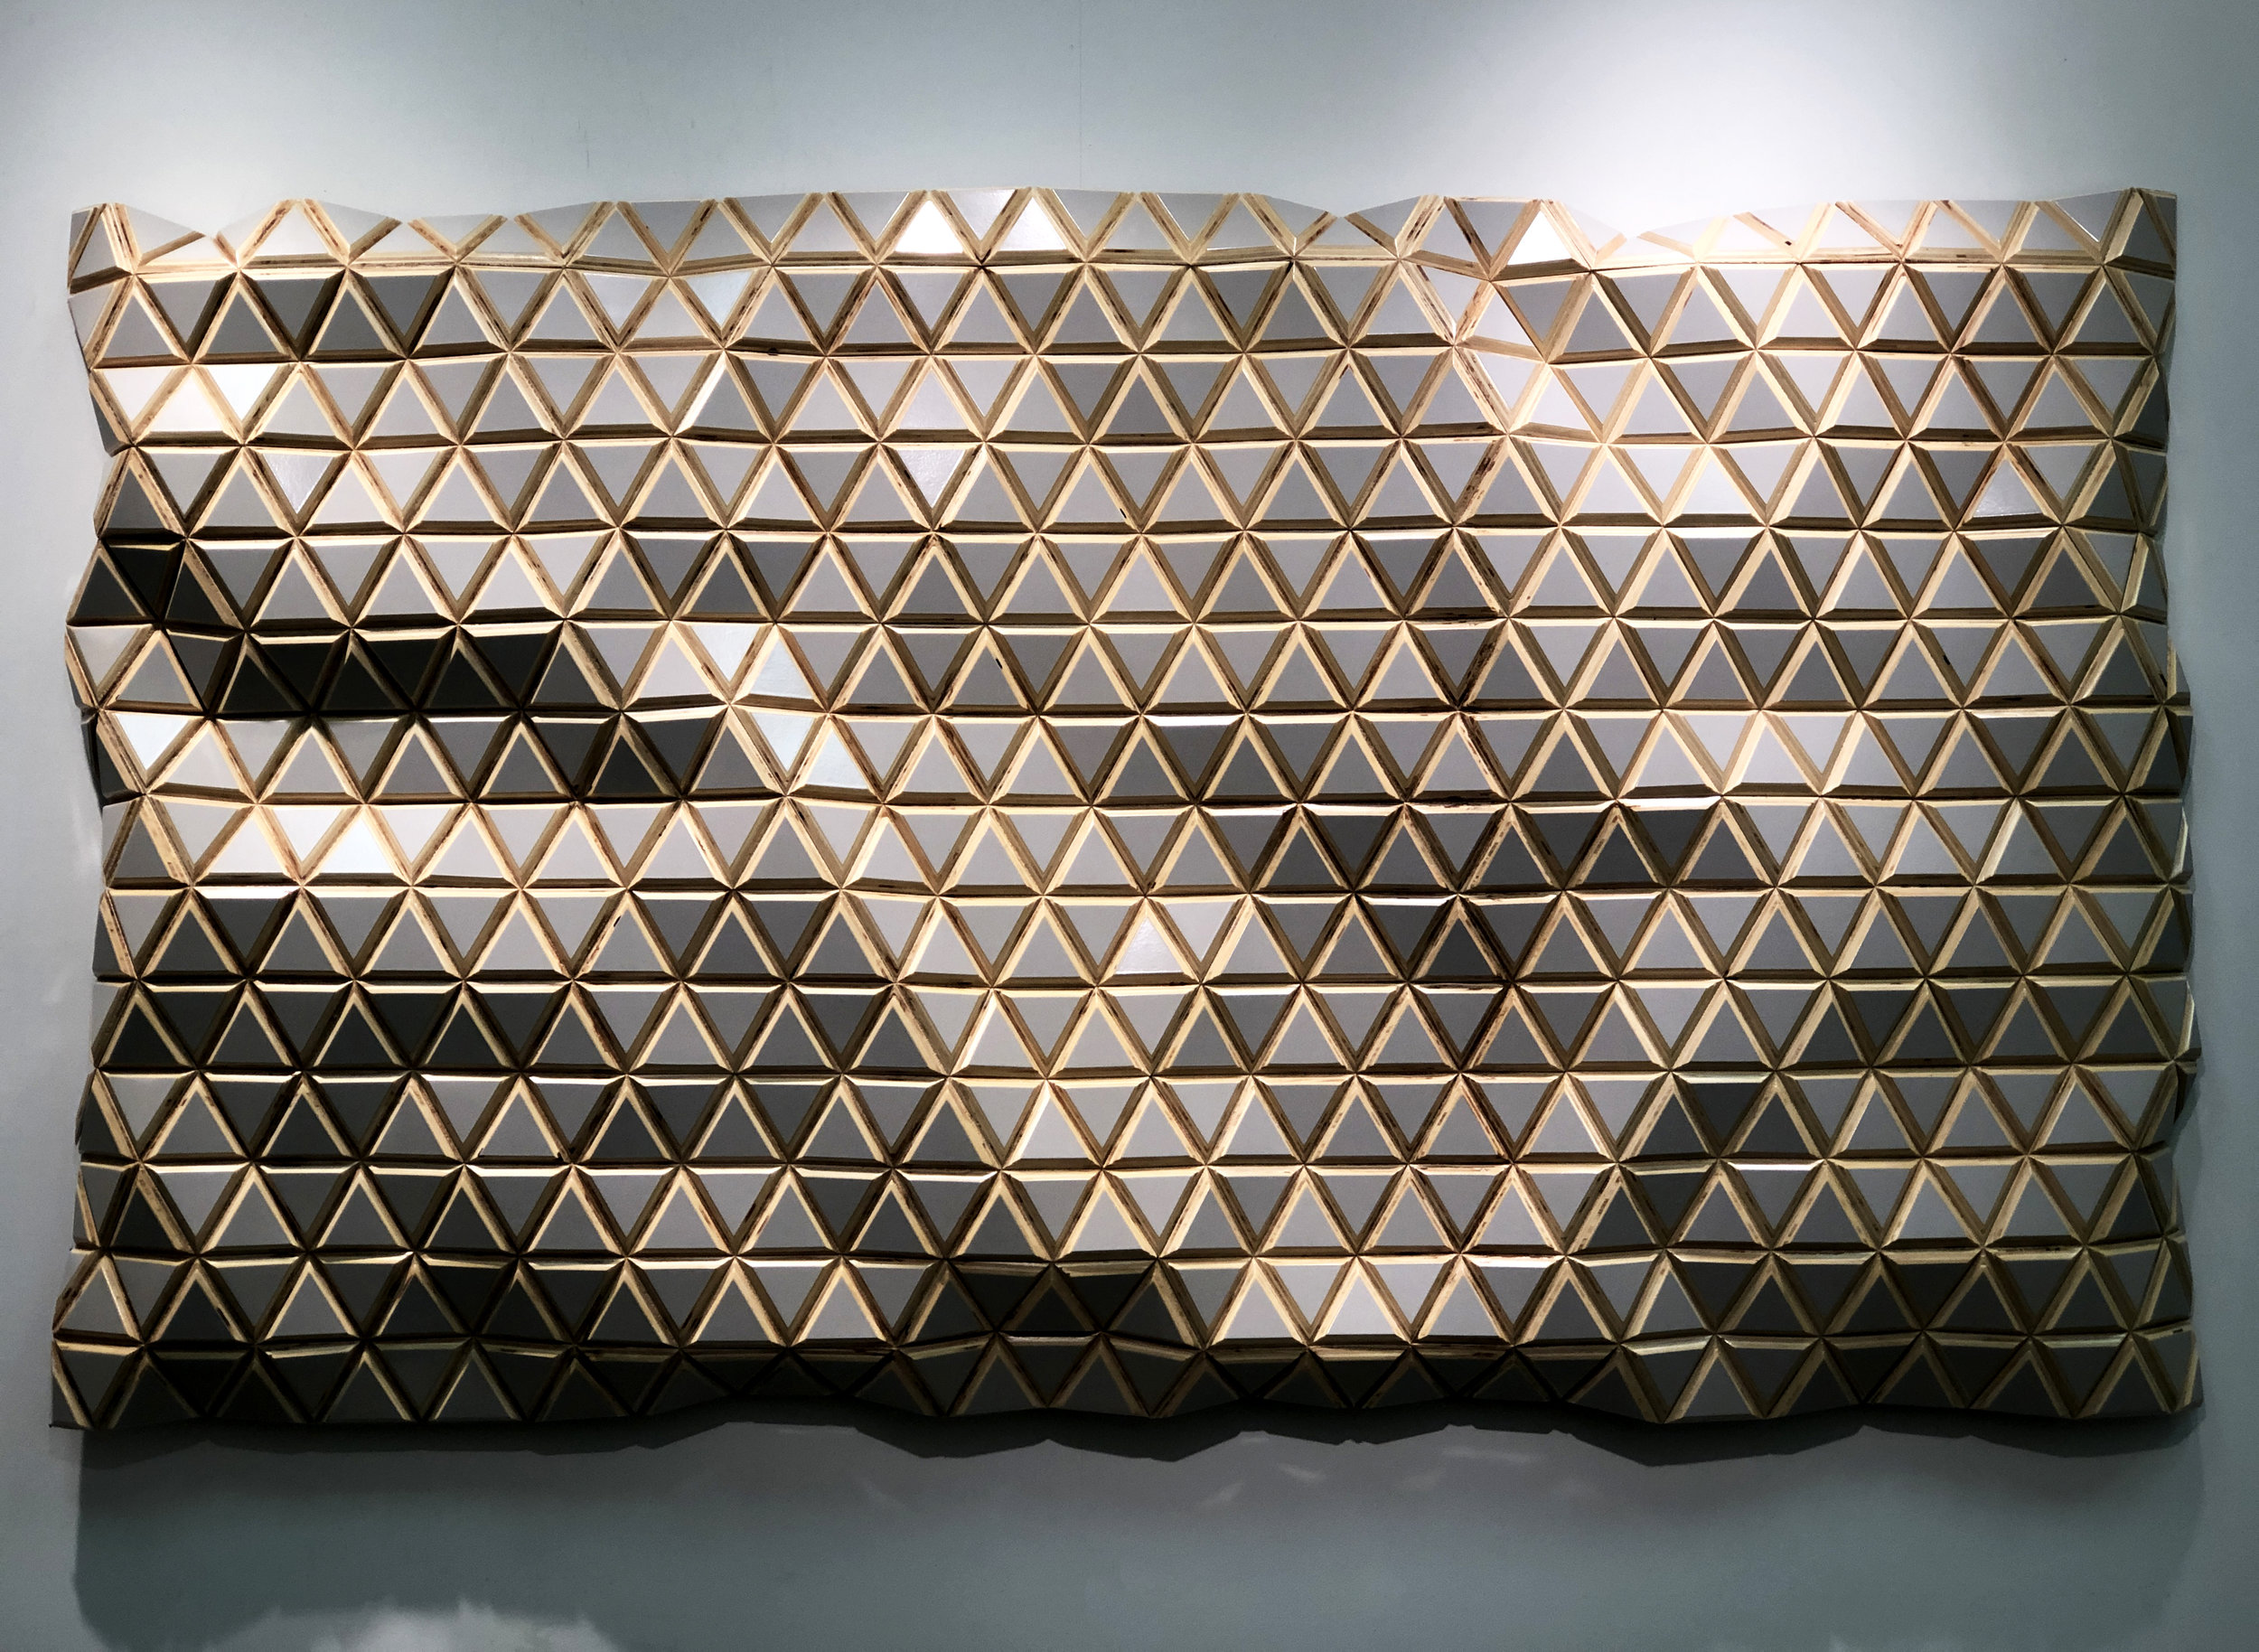 Pearl Mountain  - 2019 - Oil lacquer on carved Baltic birch - 38 x 70 inches / 96 x 178 cm